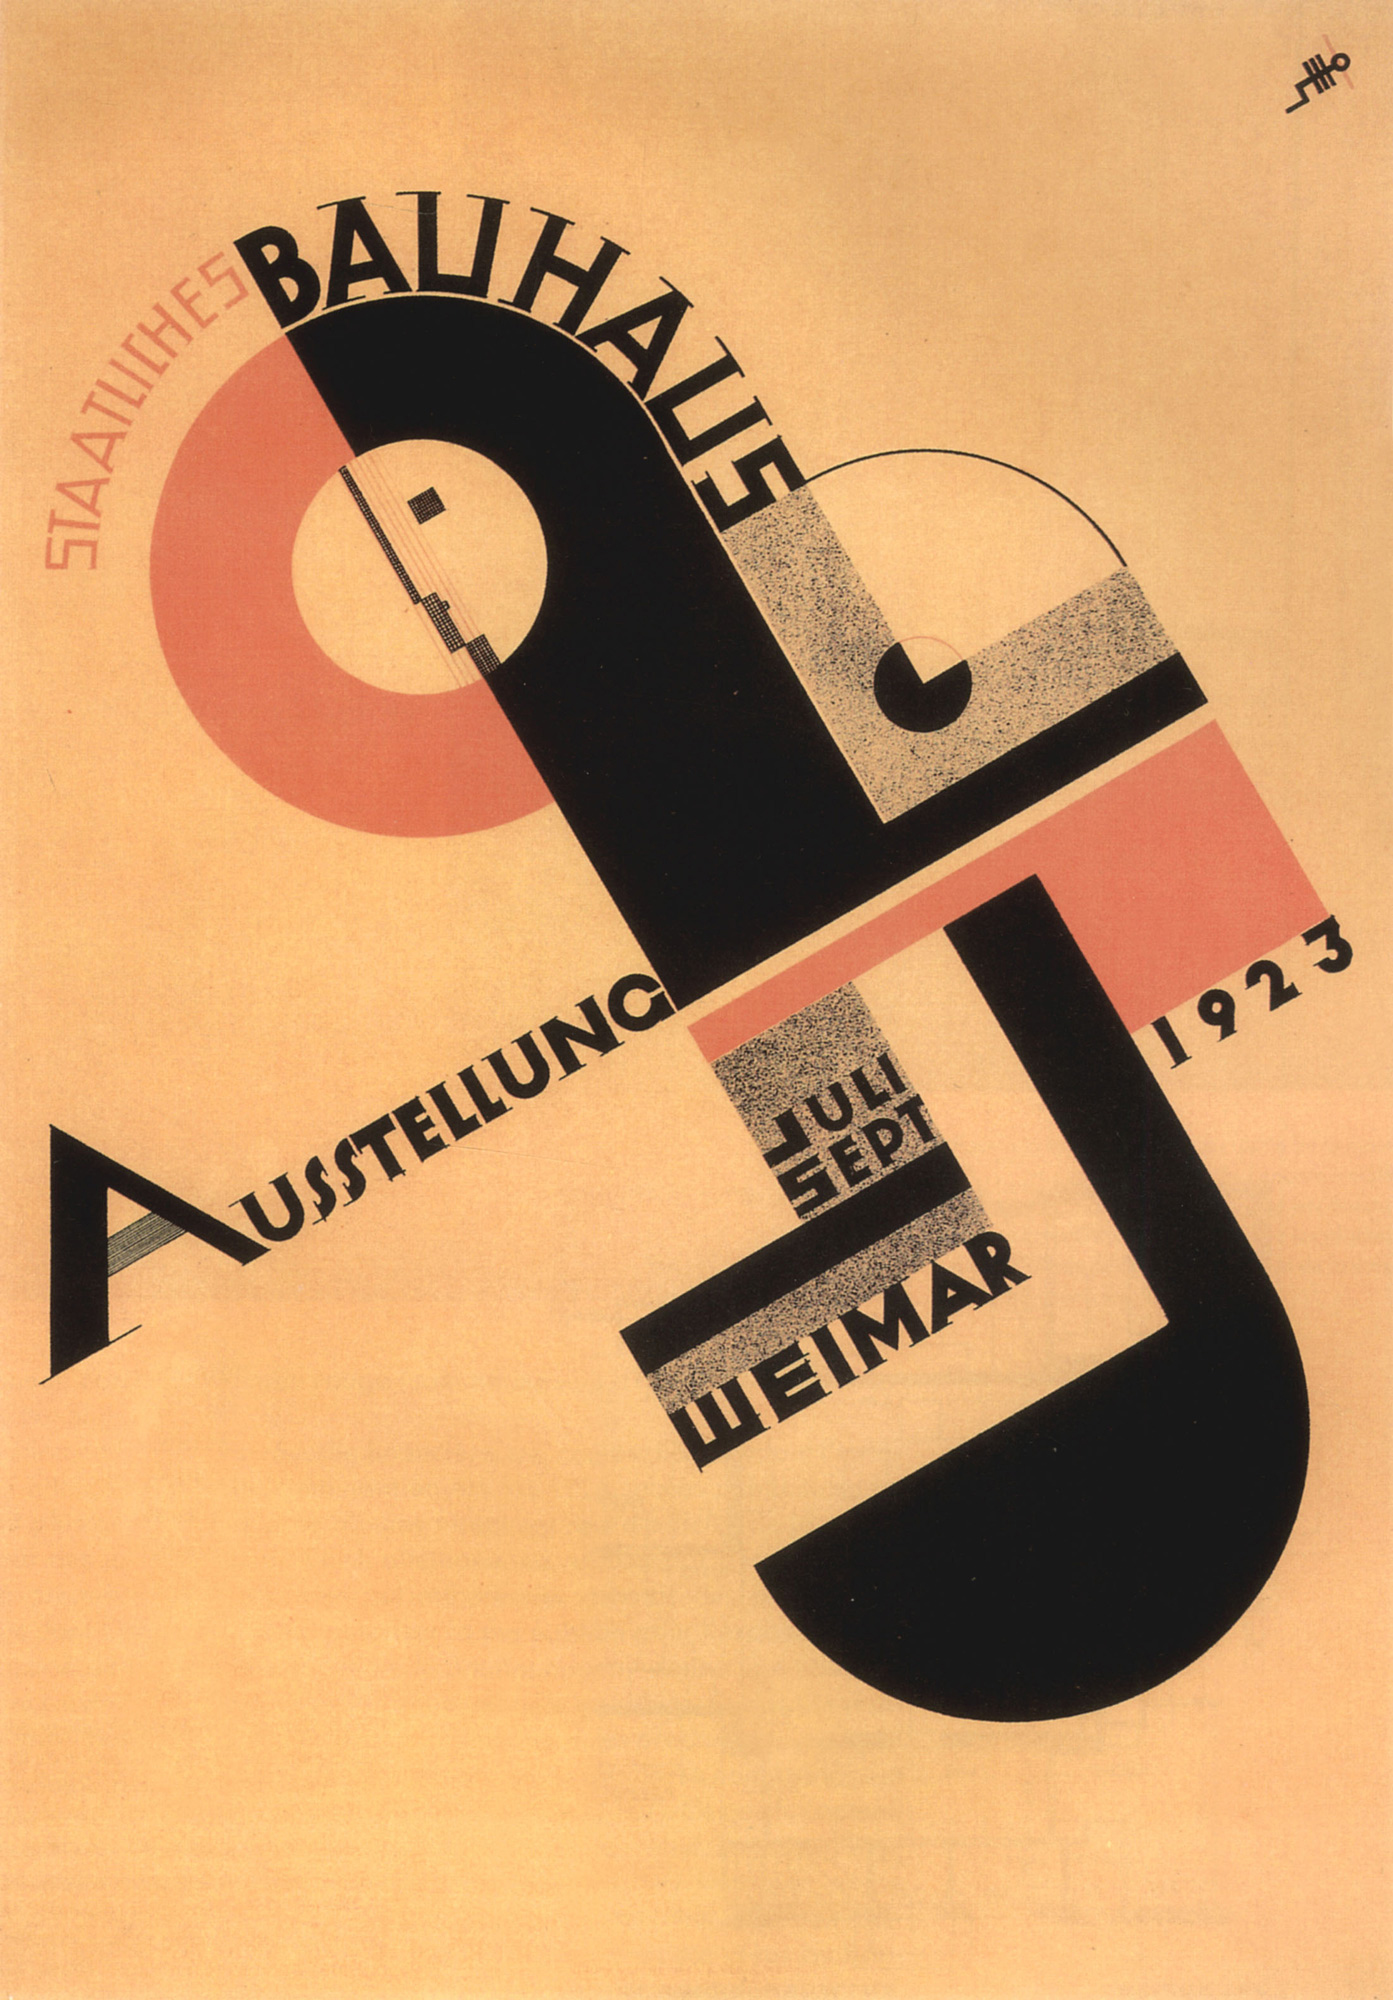 Poster of the exhibition of the Bauhaus in Weimar in 1923 by Joost Schmidt